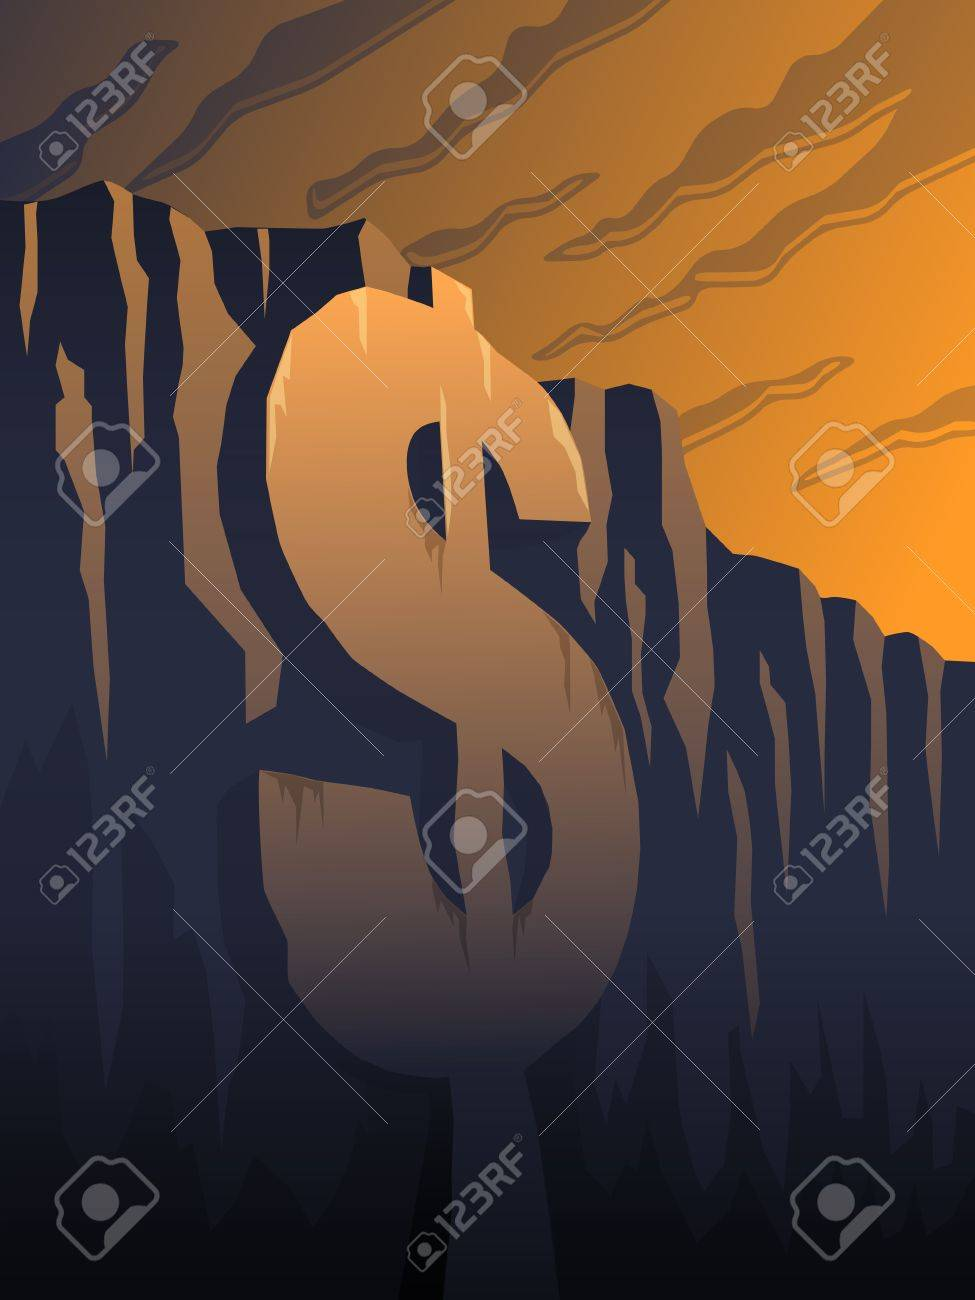 Fiscal Cliff Stock Vector - 16210395